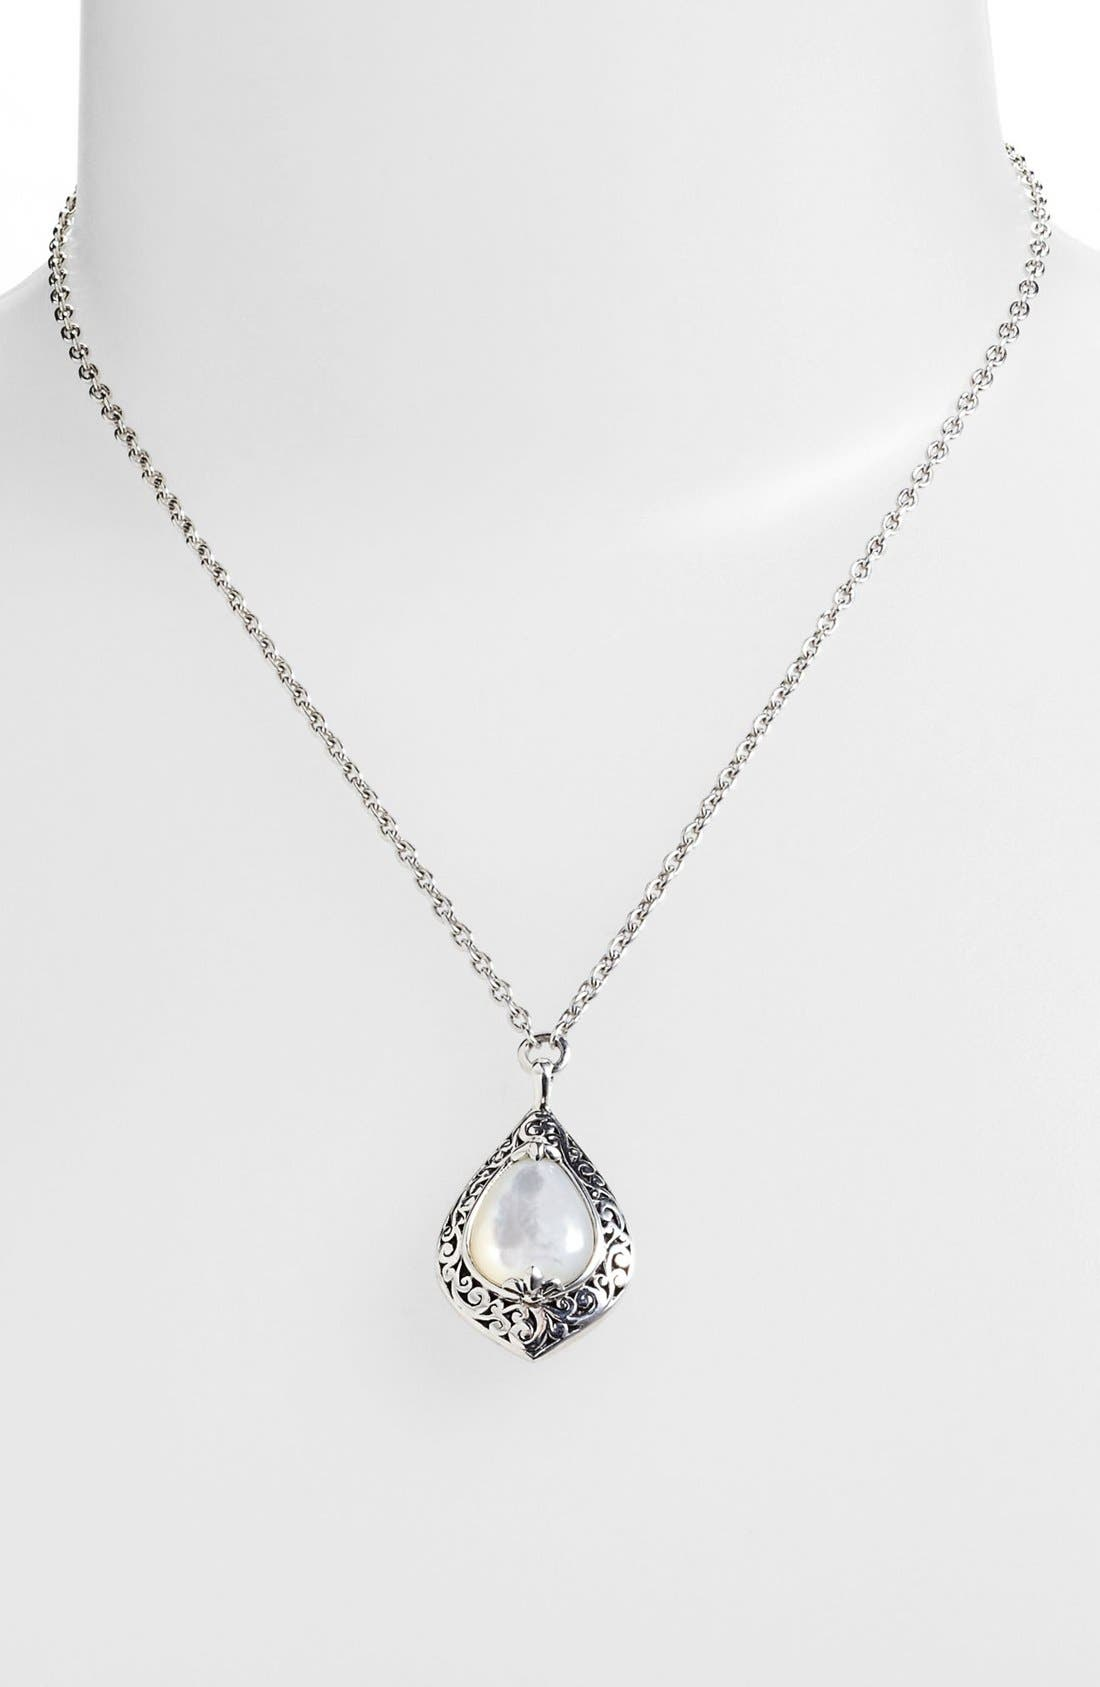 Alternate Image 1 Selected - Lois Hill Medium Mother-of-Pearl Teardrop Pendant Necklace